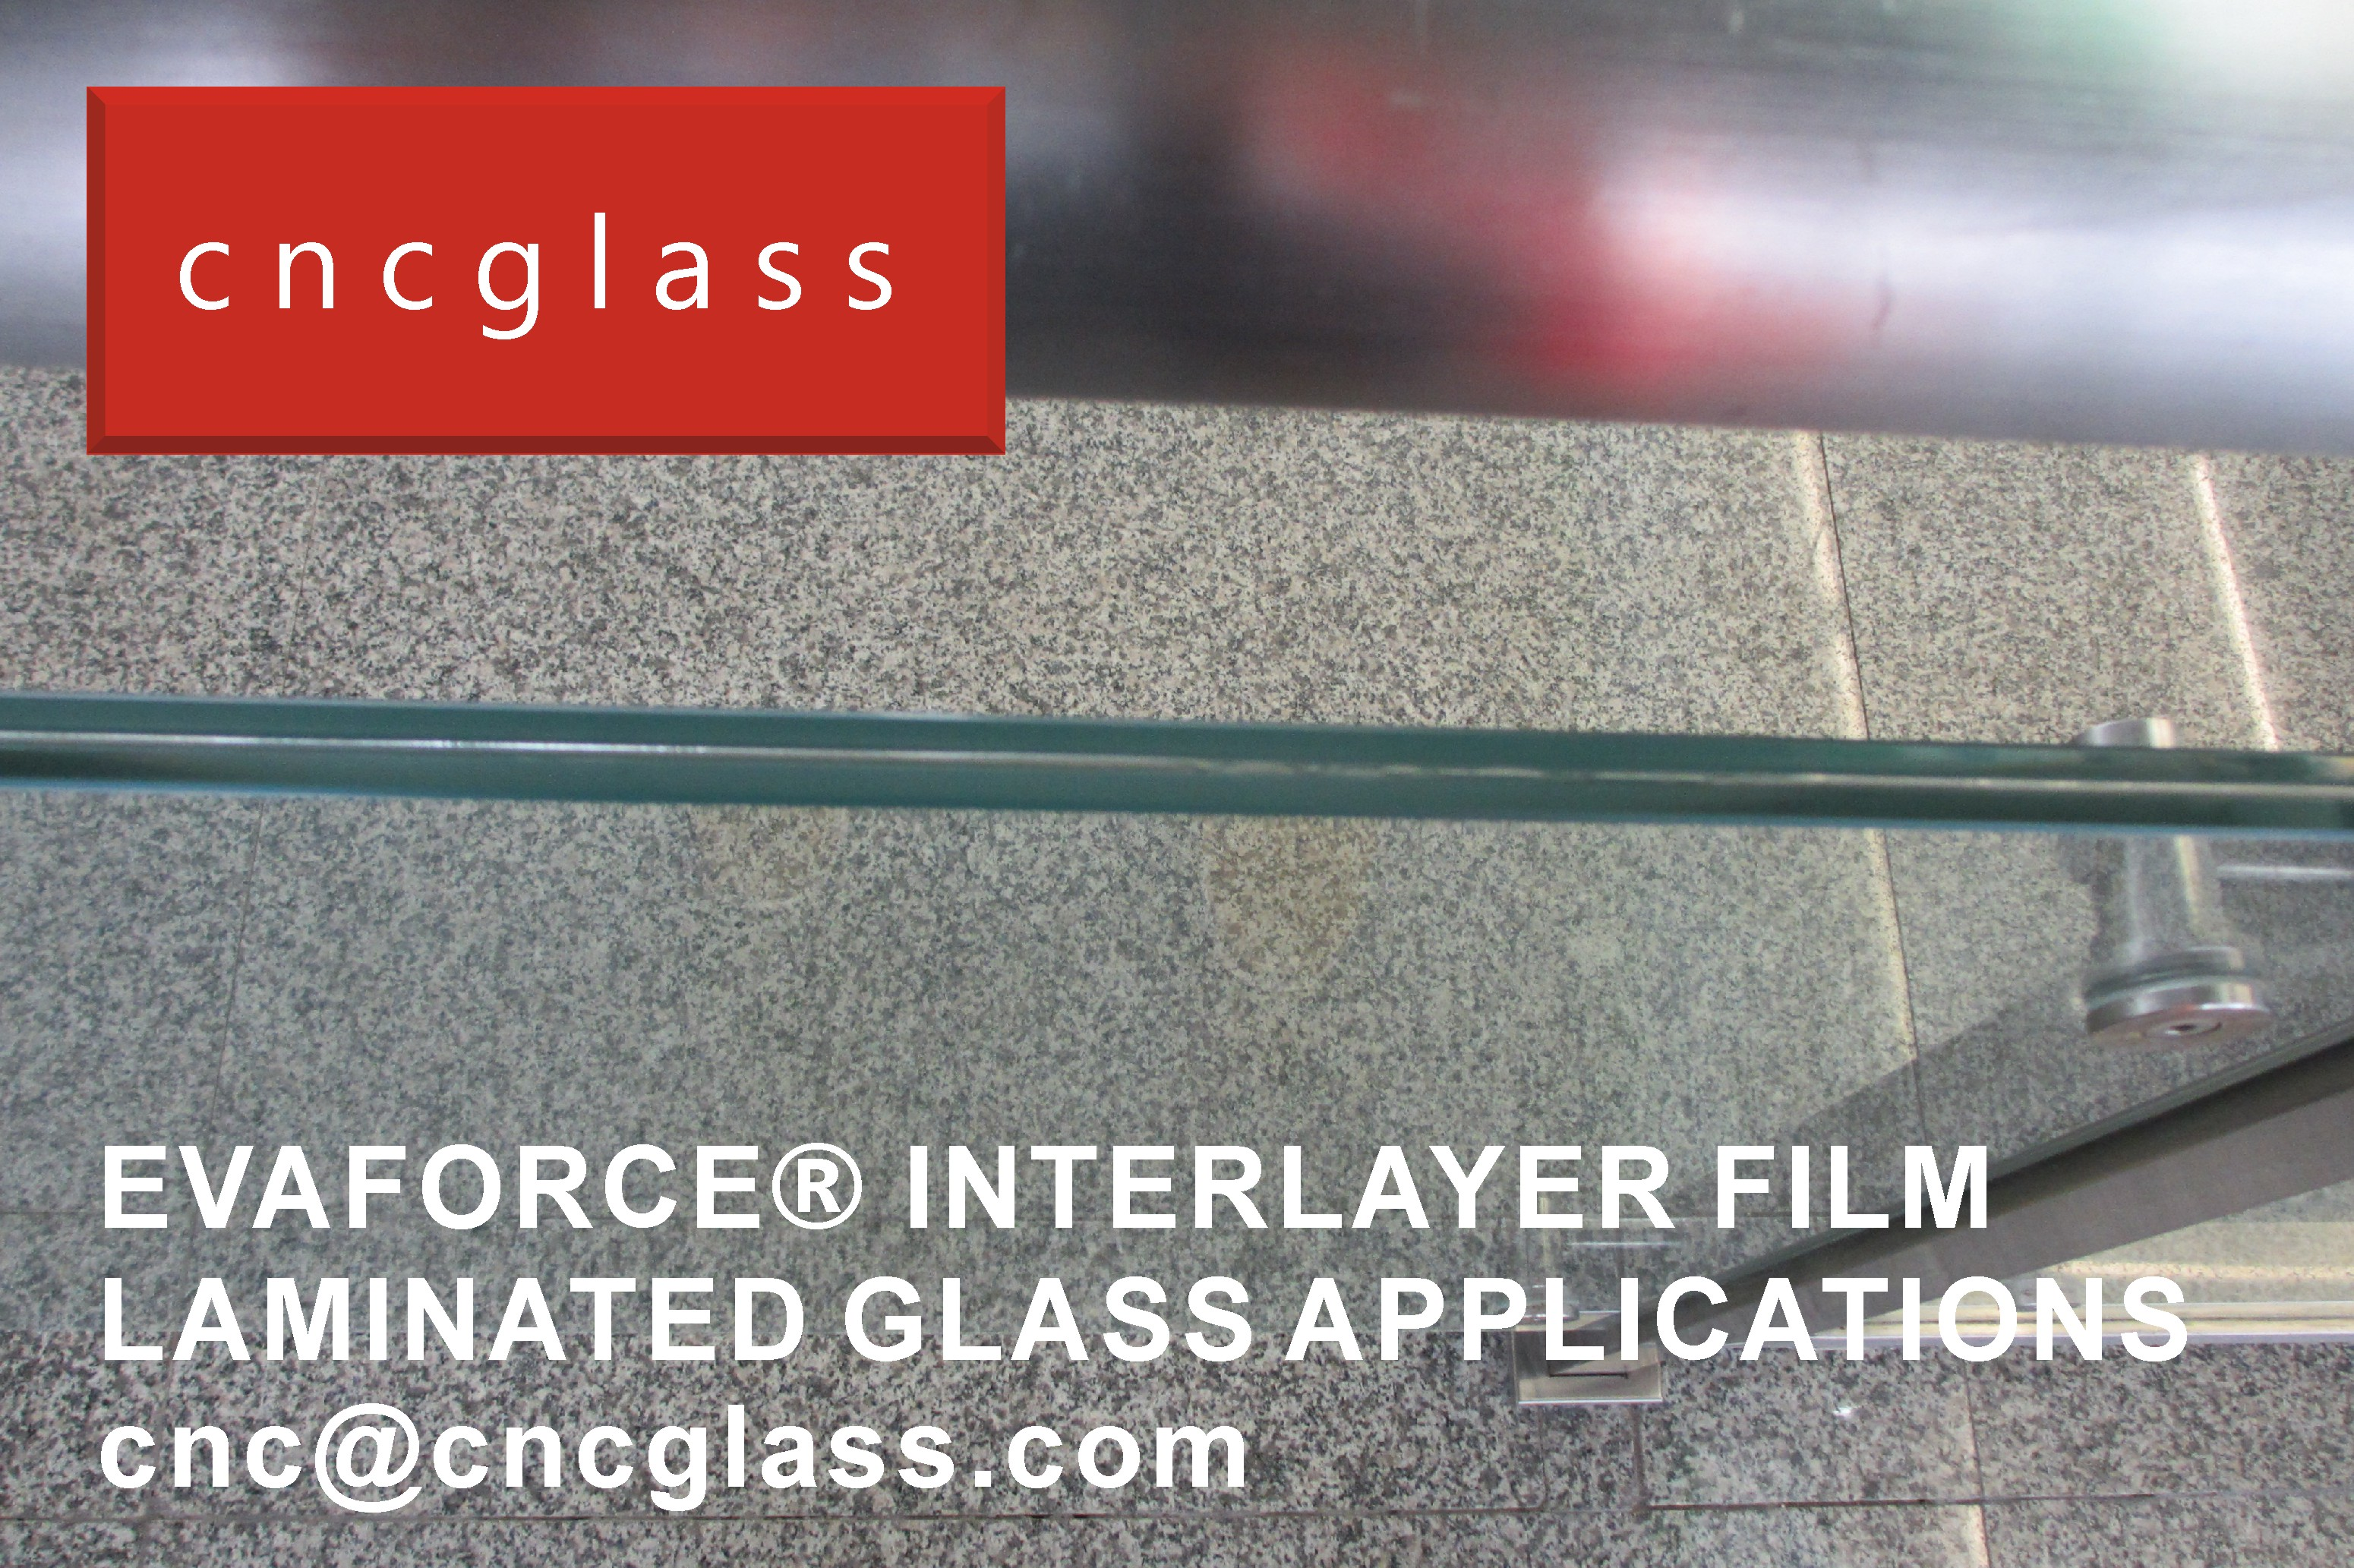 EVAFORCE INTERLAYER FILM LAMINATED GLASS APPLICATIONS (6)